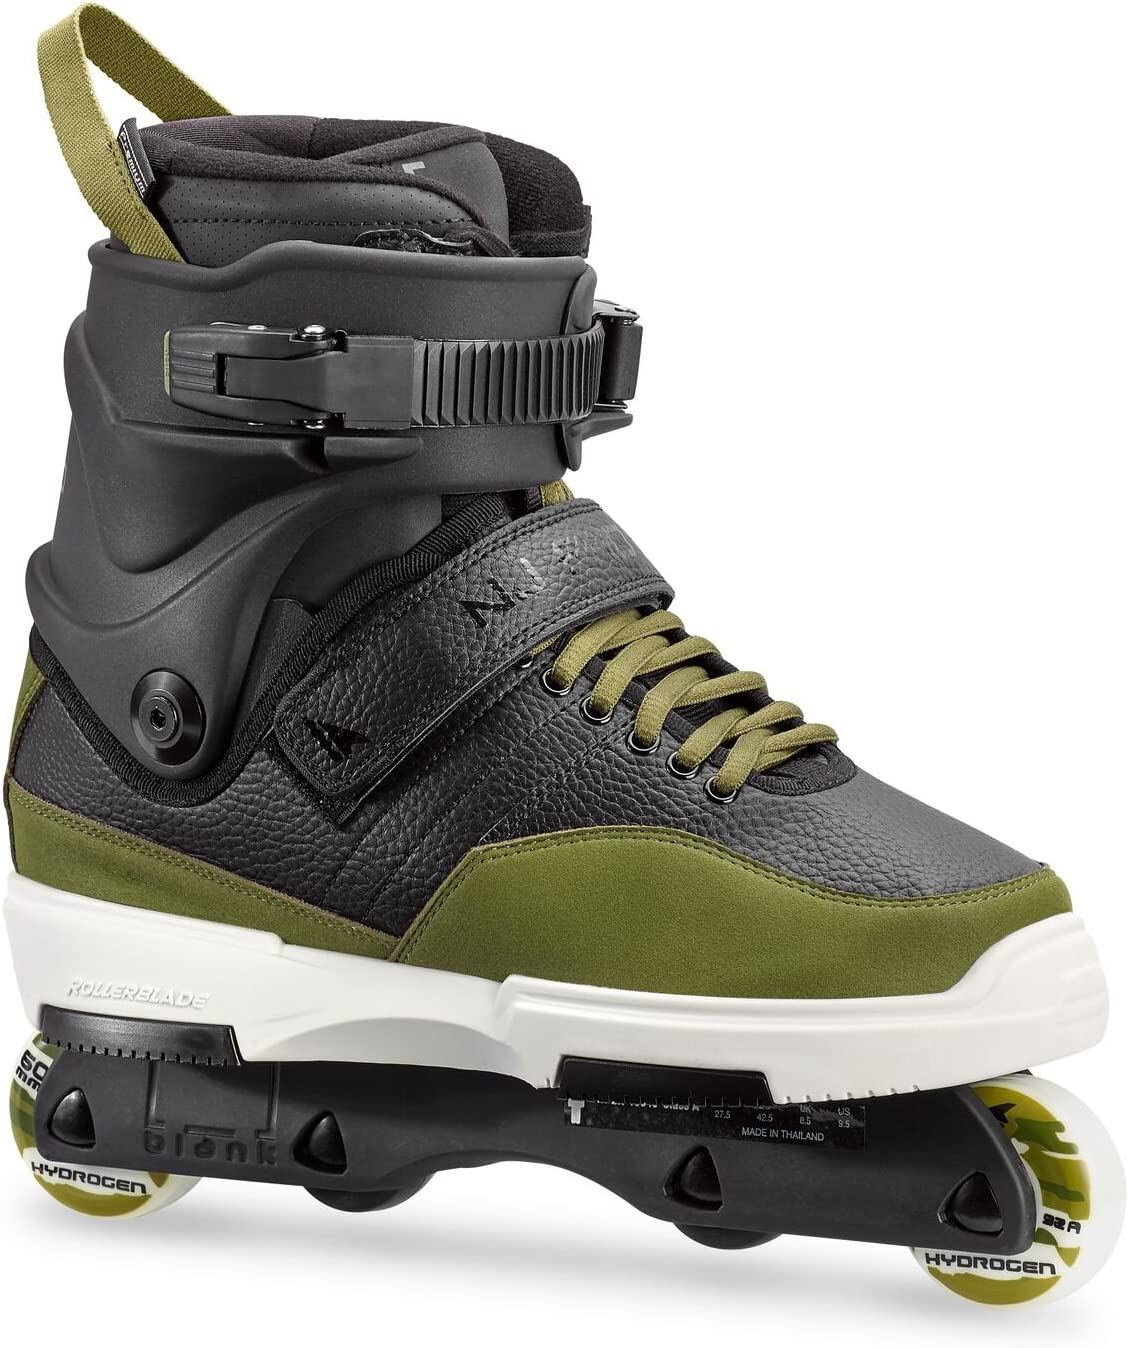 Rollerblade NJ Pro Unisex Adult Street Inline Skate, Black and Army Green, Premium Inline Skates